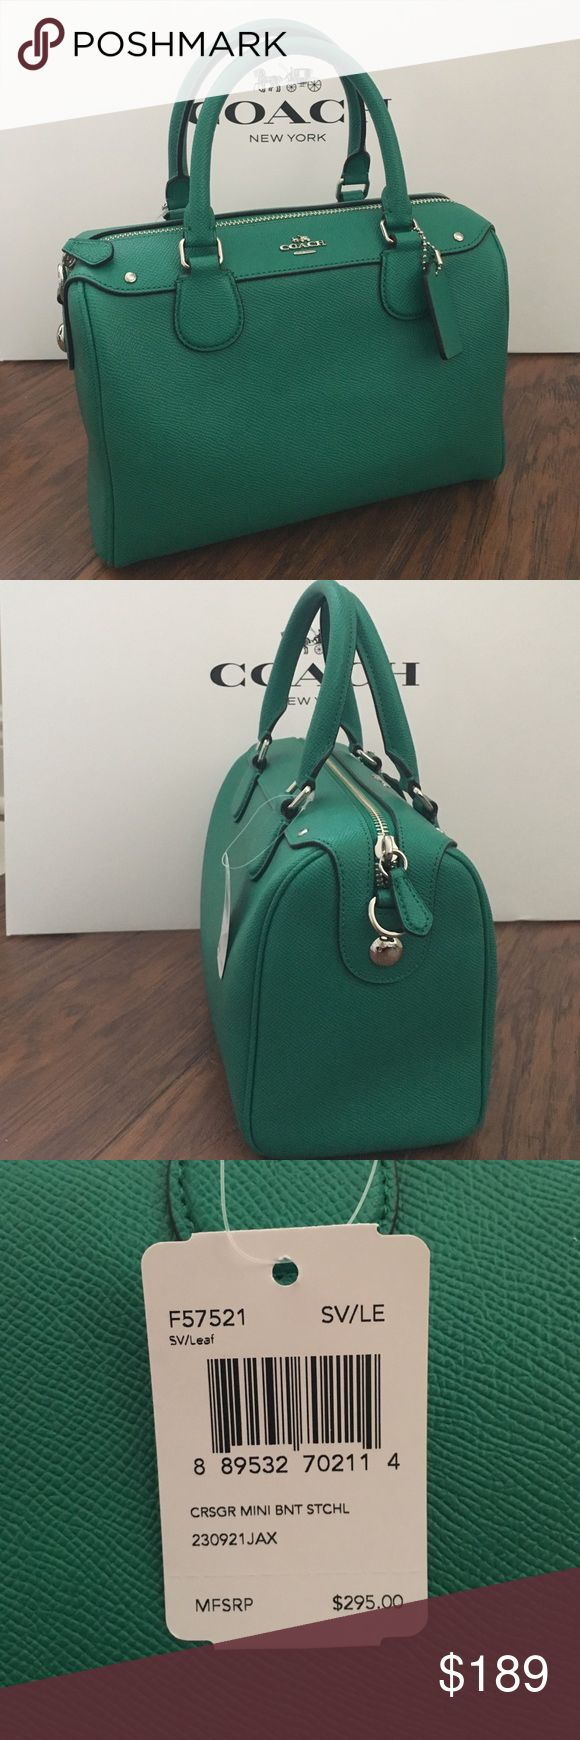 "💖WOW💖COACH Mini Bennet Crossgrain Satchel Guaranteed Authentic! New Arrival! Coach F57521 Mini Bennet Satchel in a beautiful green leaf color. Flower keychain/charm NOT INCLUDED in this listing. Inside zip, cell phone and multifunction pockets. Zip-top closure. Beautiful green fabric lining. Handles with 4"" drop. Longer strap with 23"" for shoulder or crossbody wear. Approx. measurements: 9""L x 6 1/2""H x 5""W. Bundle with flower keychain/charm for discount. Item will be videotaped prior to…"